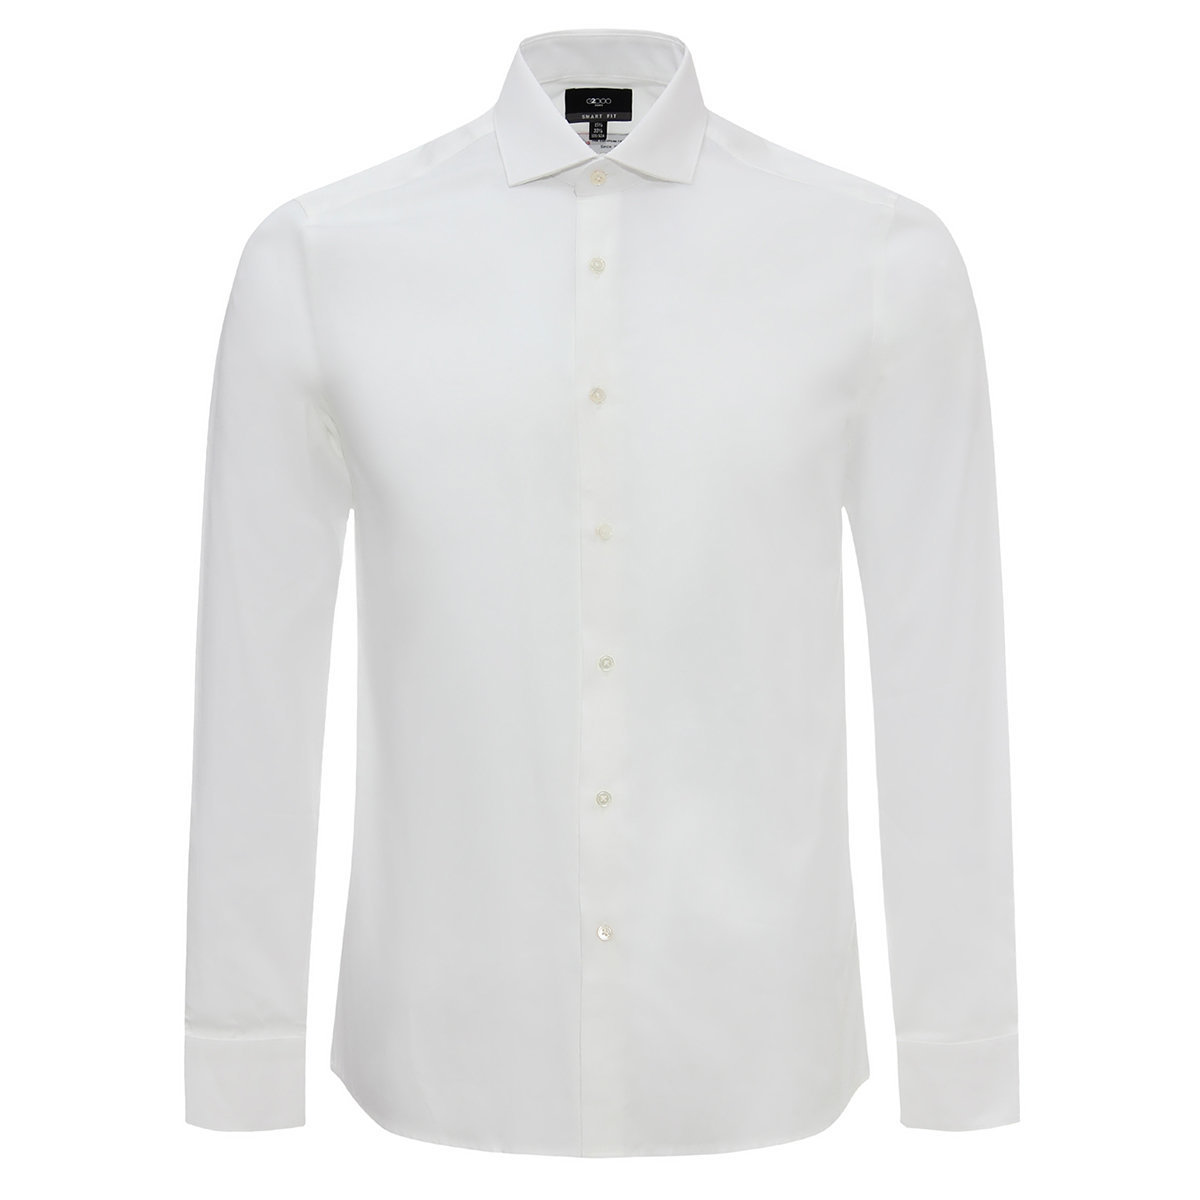 MEN'S 100% COTTON Long Sleeve Shirt(white)